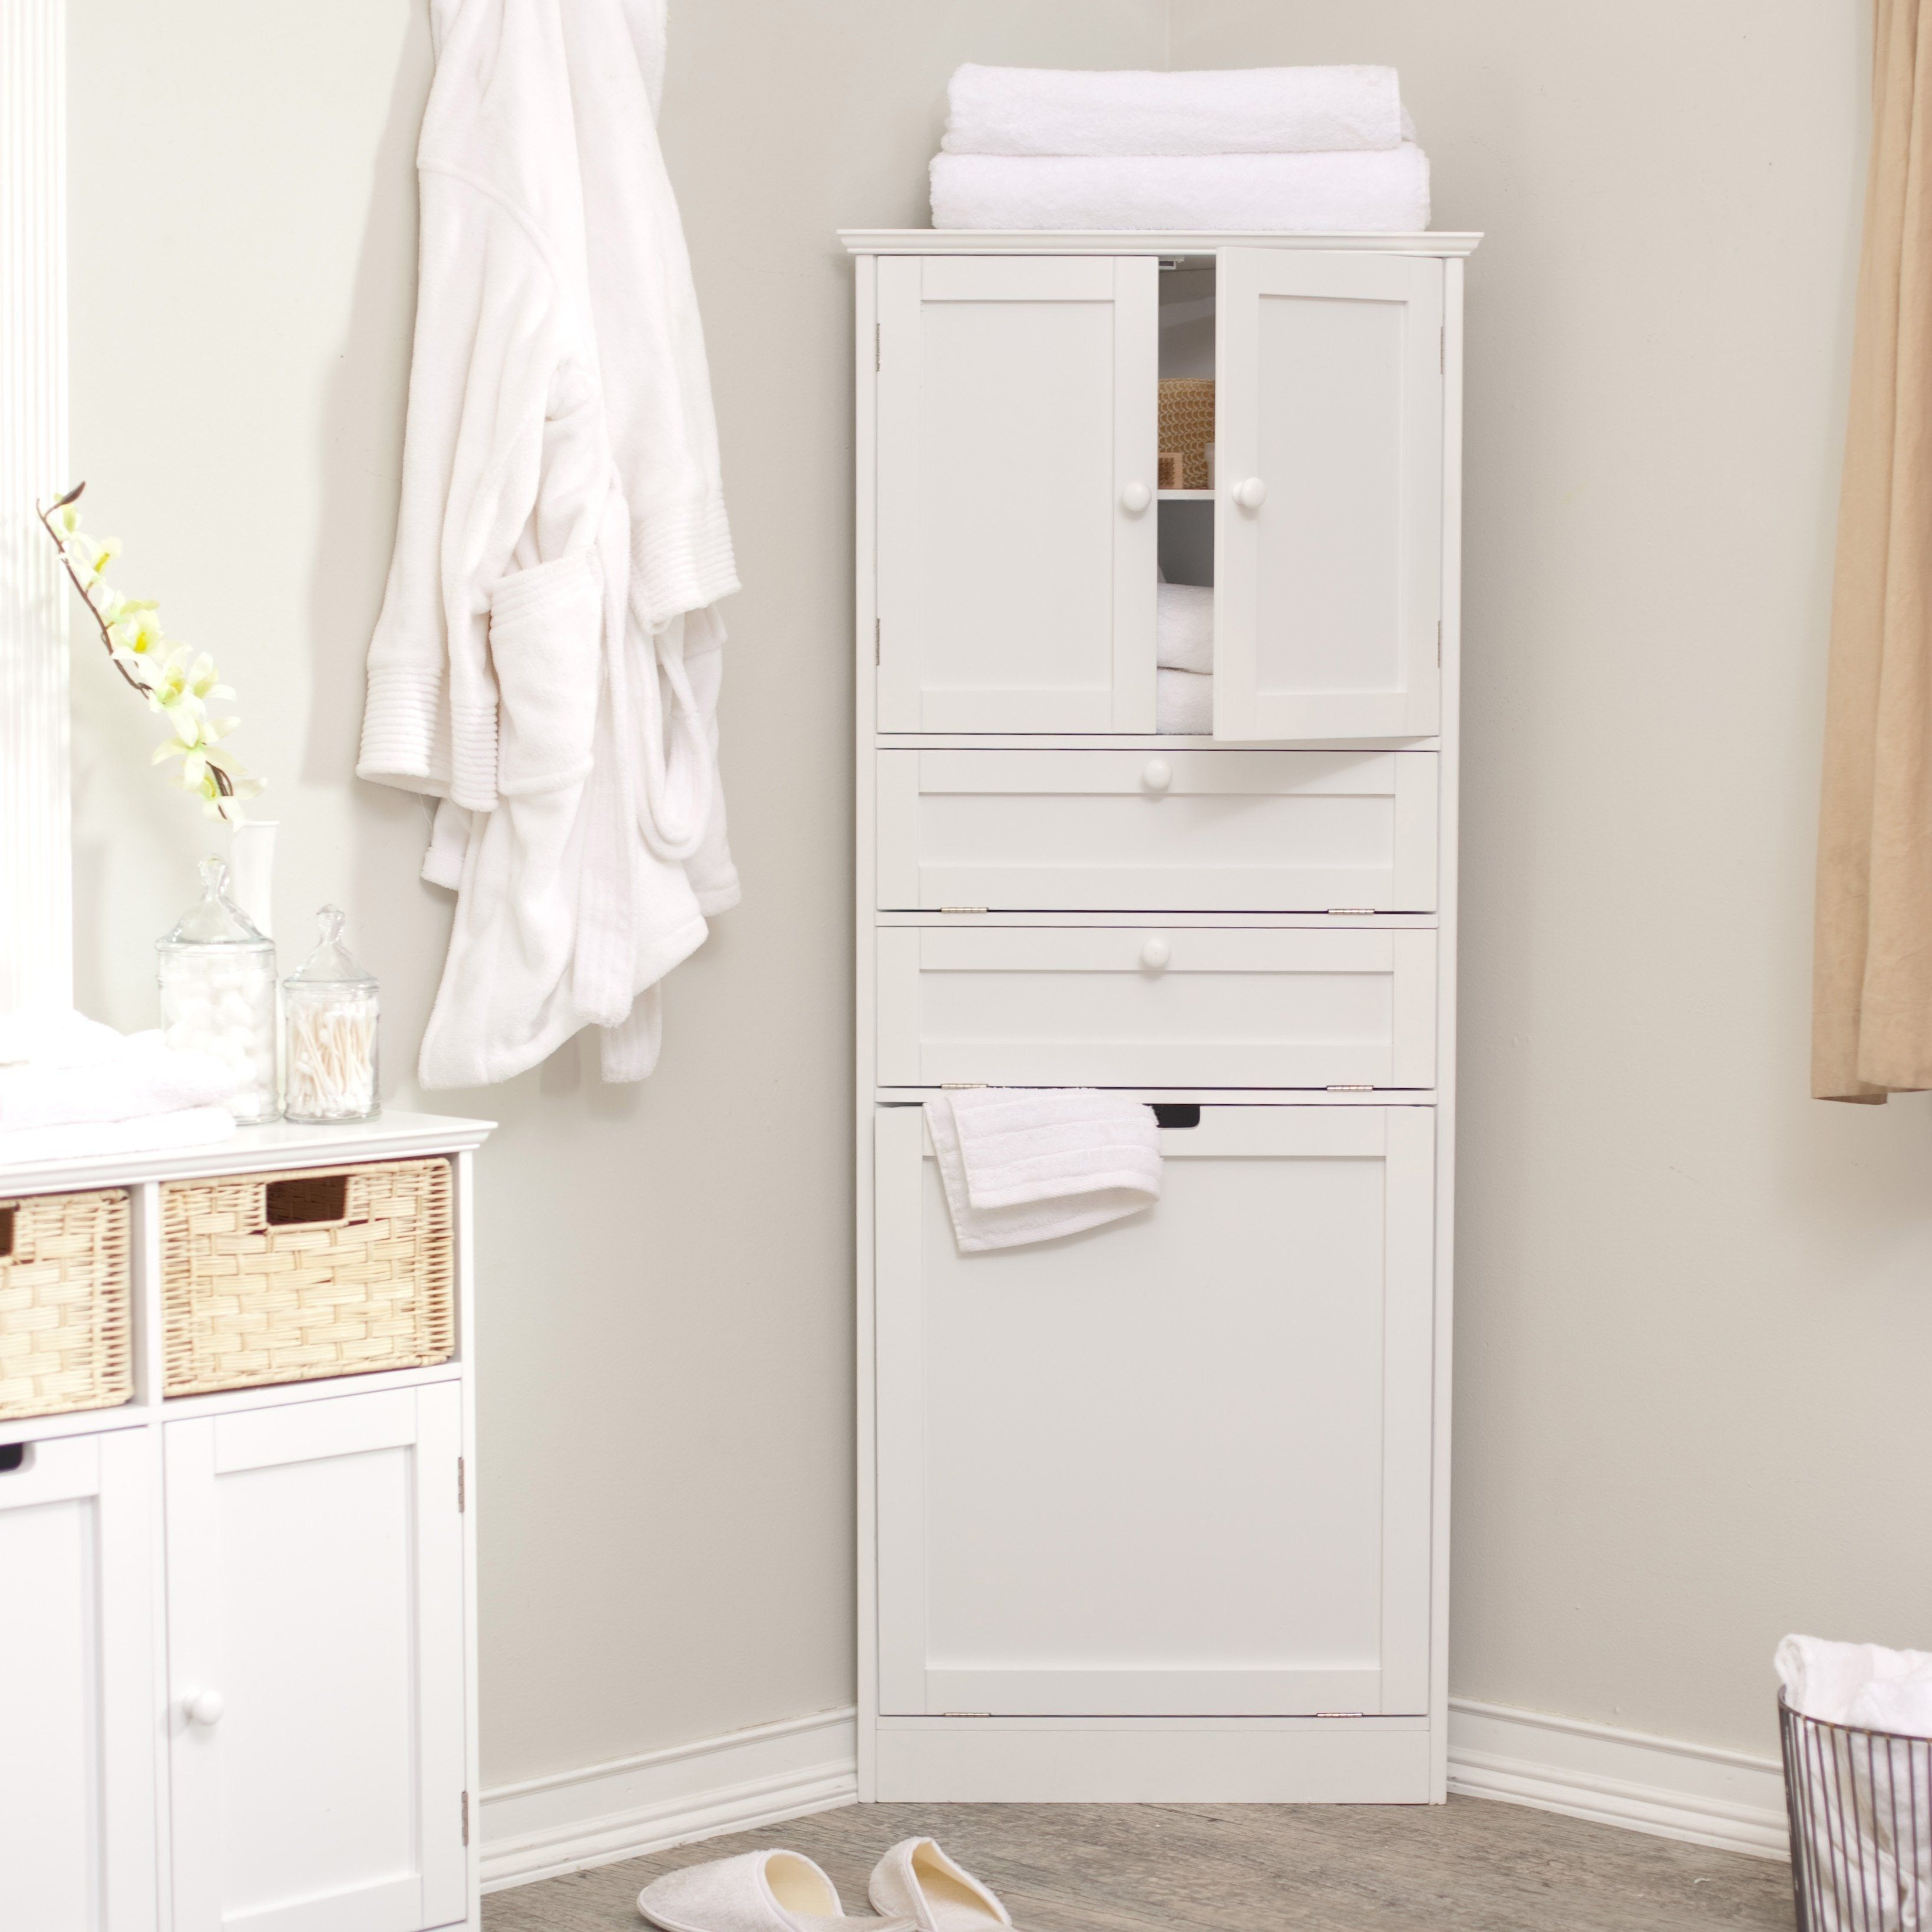 Small Chest Of Drawers For Bathroom | http://ezserver.us | Pinterest ...